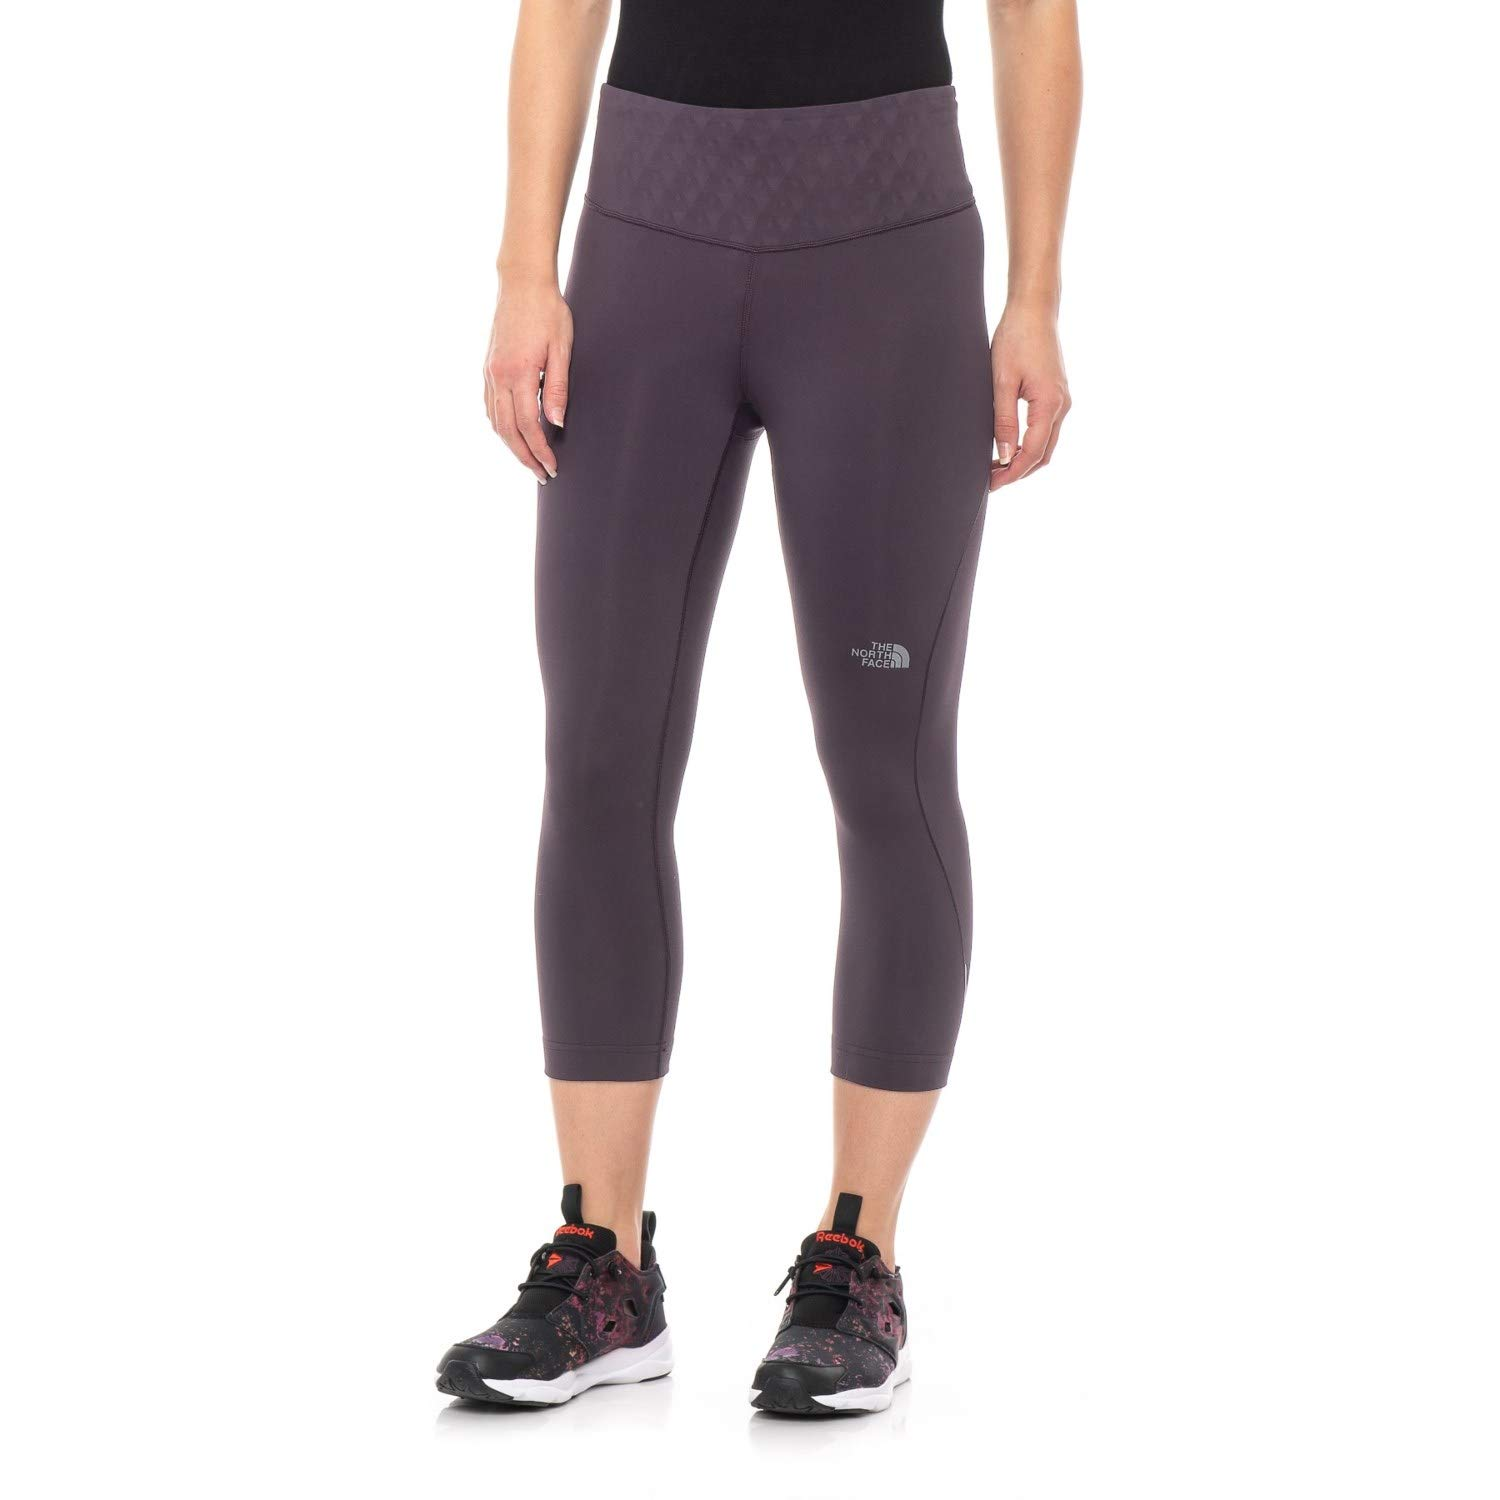 Galaxy Purple THE NORTH FACE Women's Flight Zero Mid Rise Capri Pants